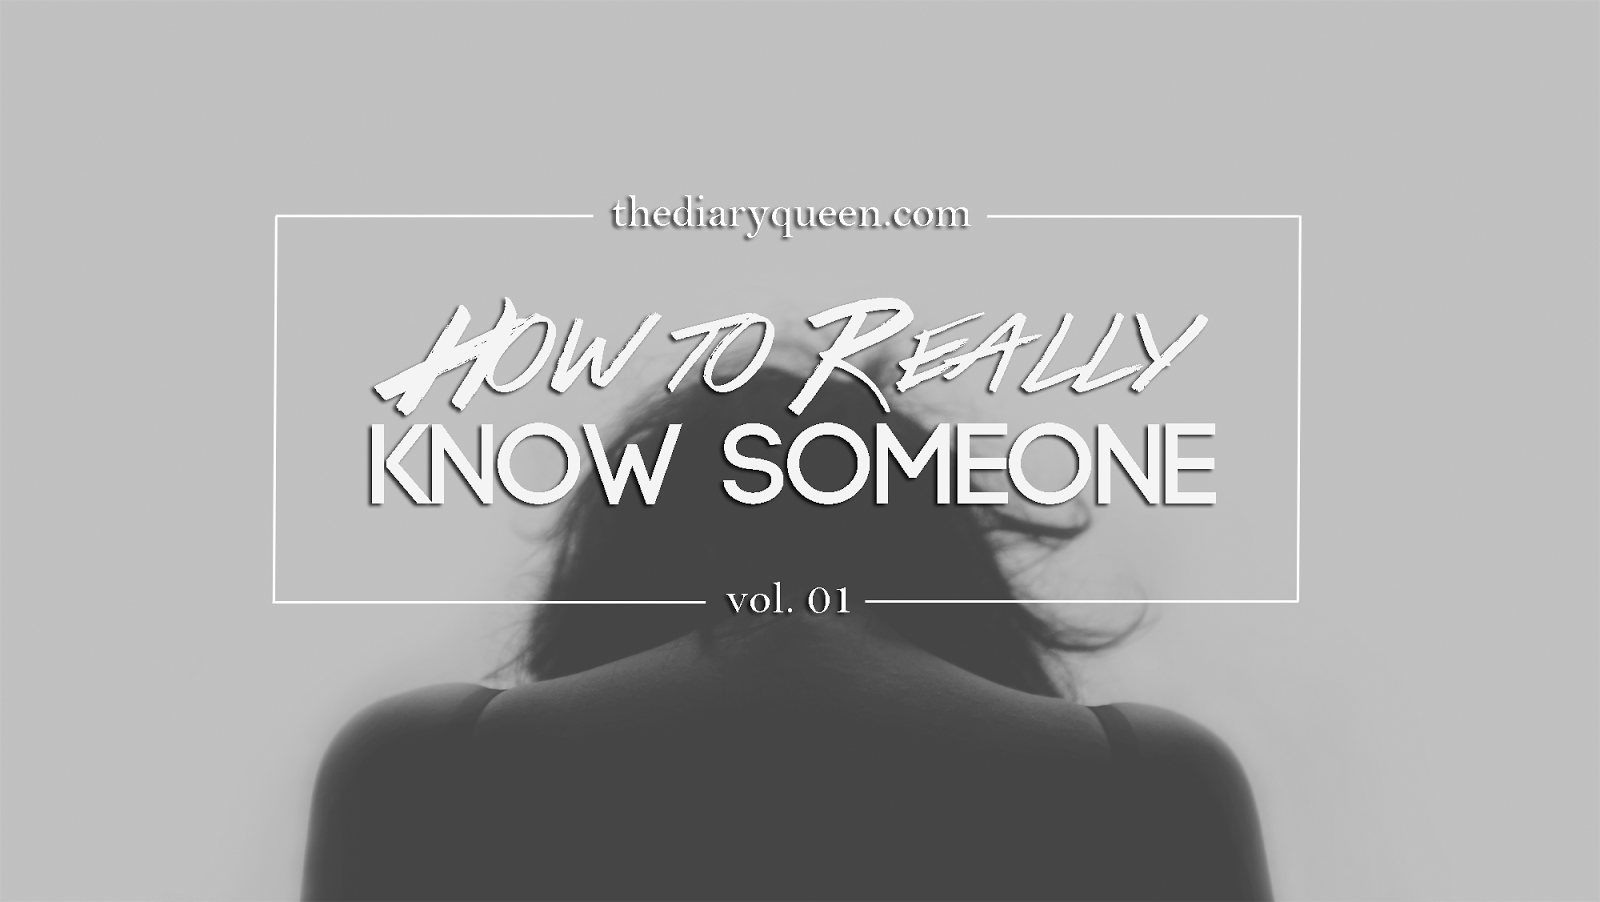 The Diary Queen: how to really know someone, vol 1